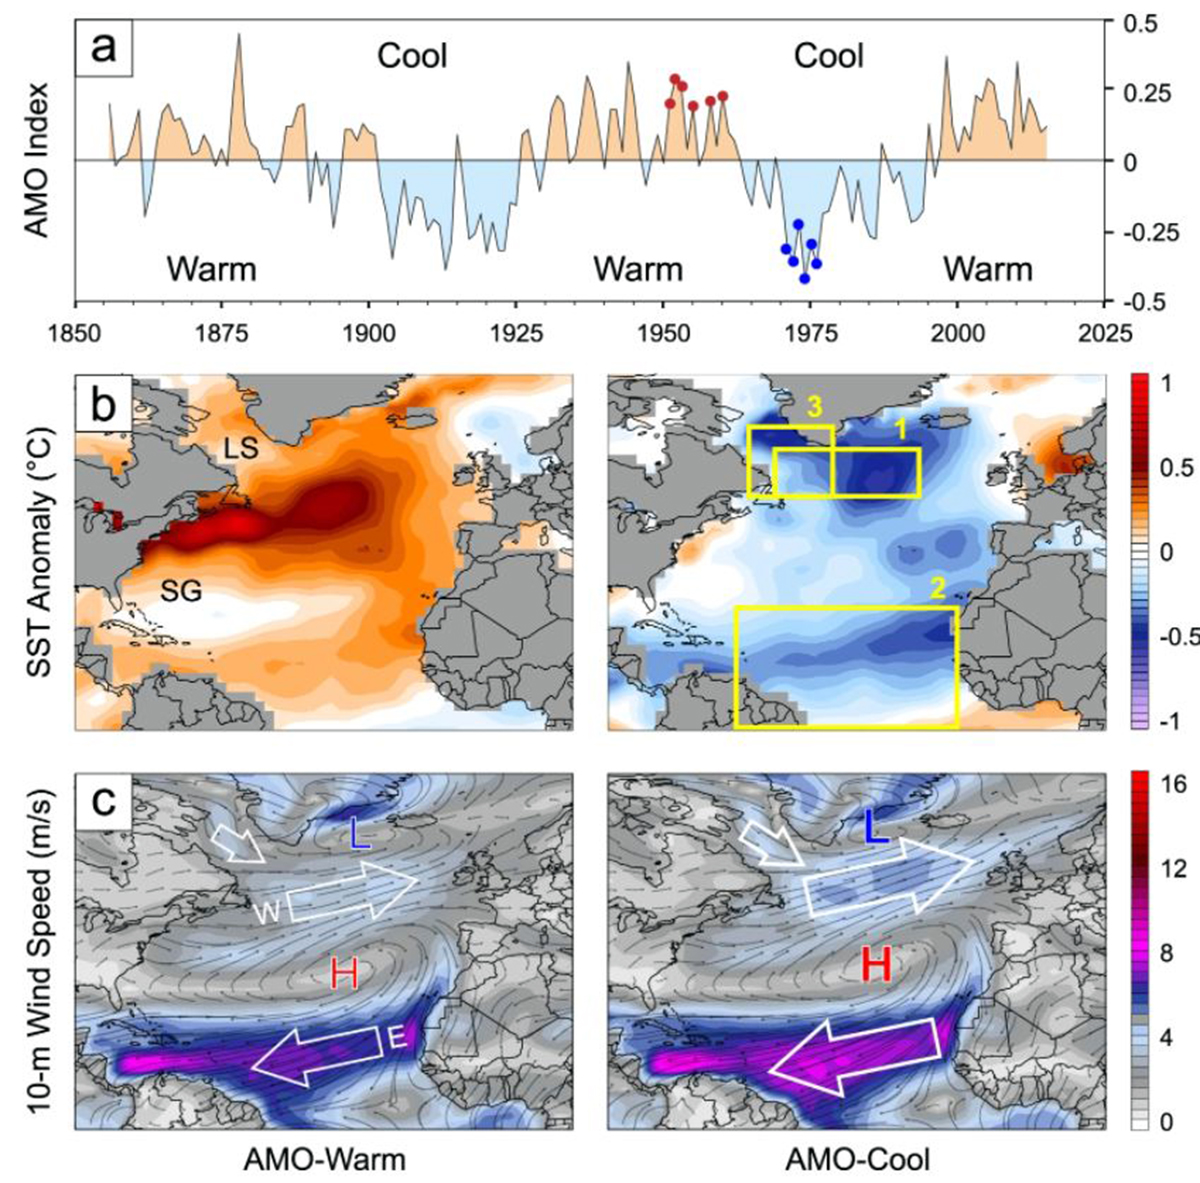 extreme-snowfall-future-winters-alps-glaciers-challenging-global-warming-amo